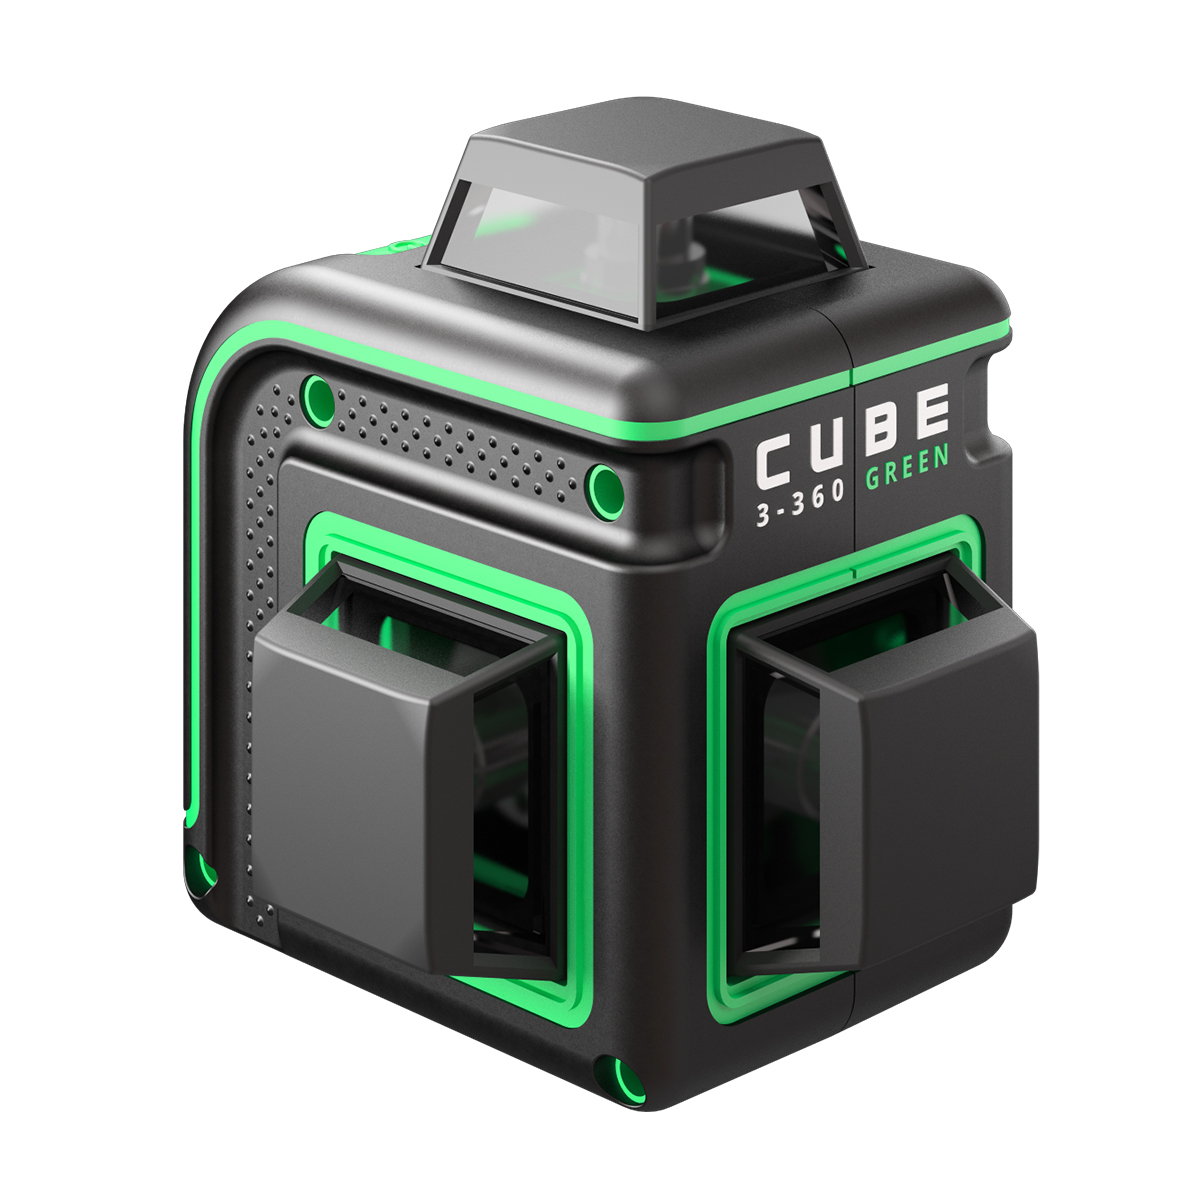 Laser Lavel ADA CUBE 3-360 GREEN BASIC EDITION